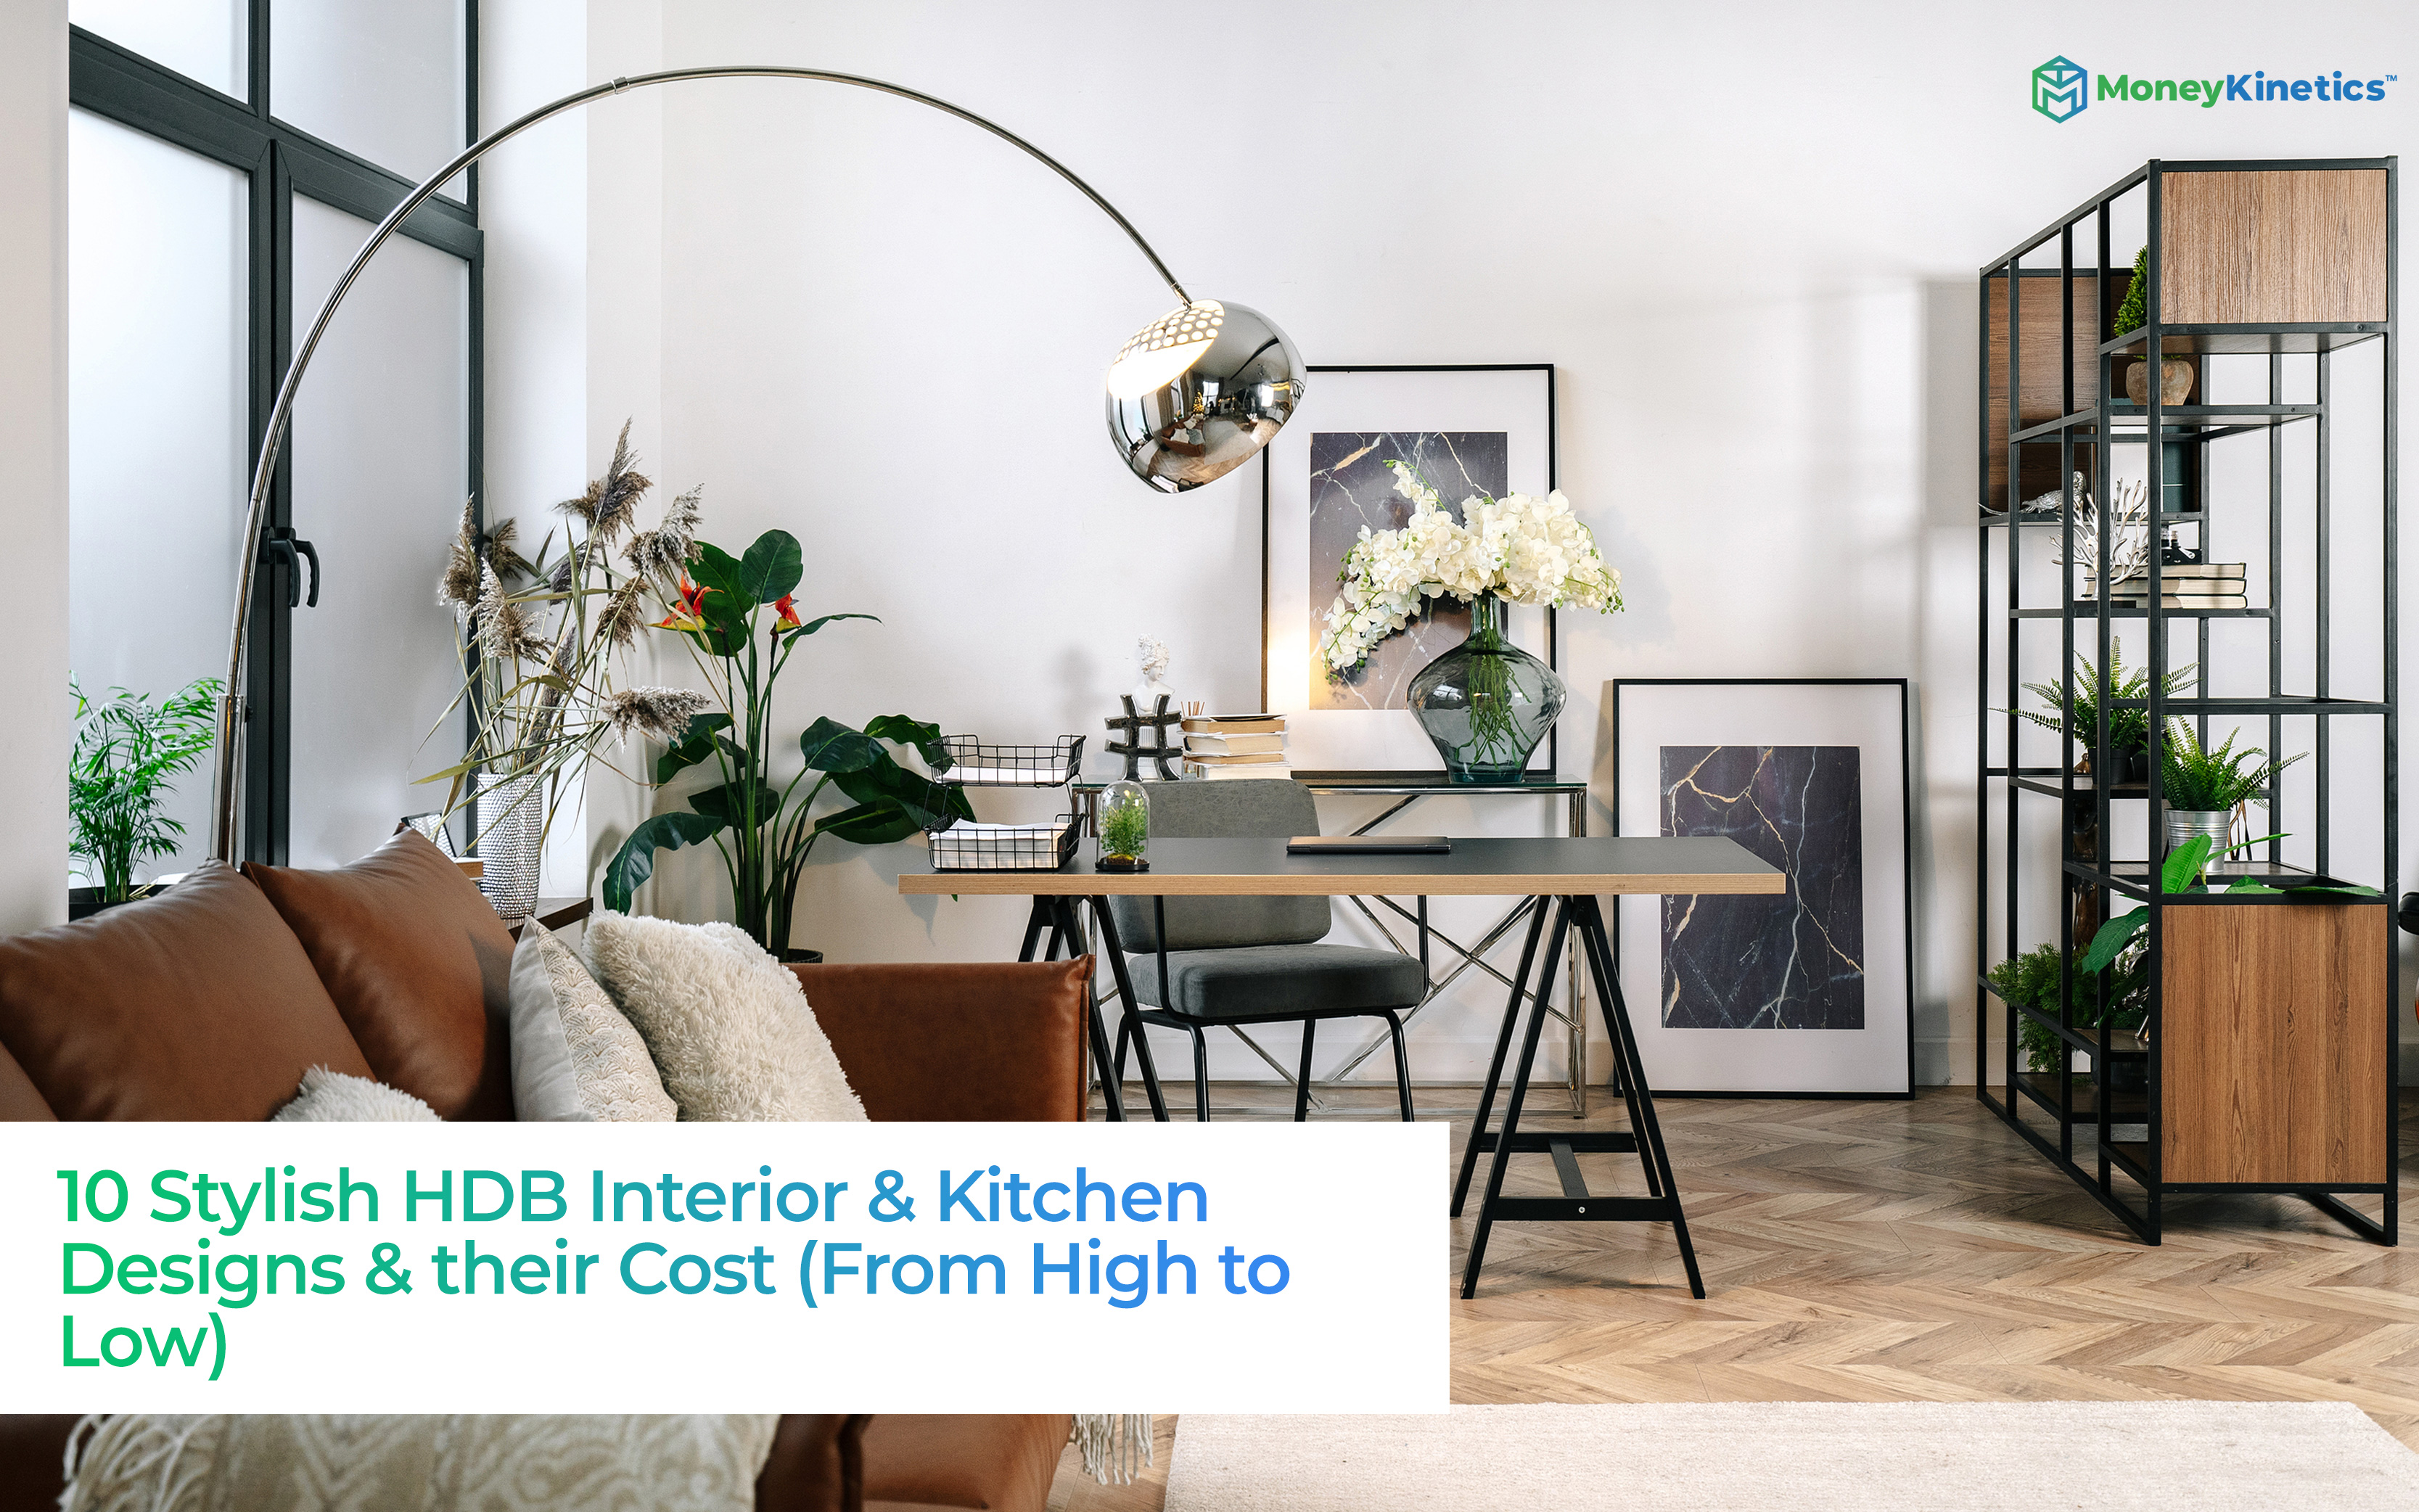 10-Stylish-HDB-Interior-&-Kitchen-Designs-&-their-Cost-(From-High-to-Low)-Money-Kinetics